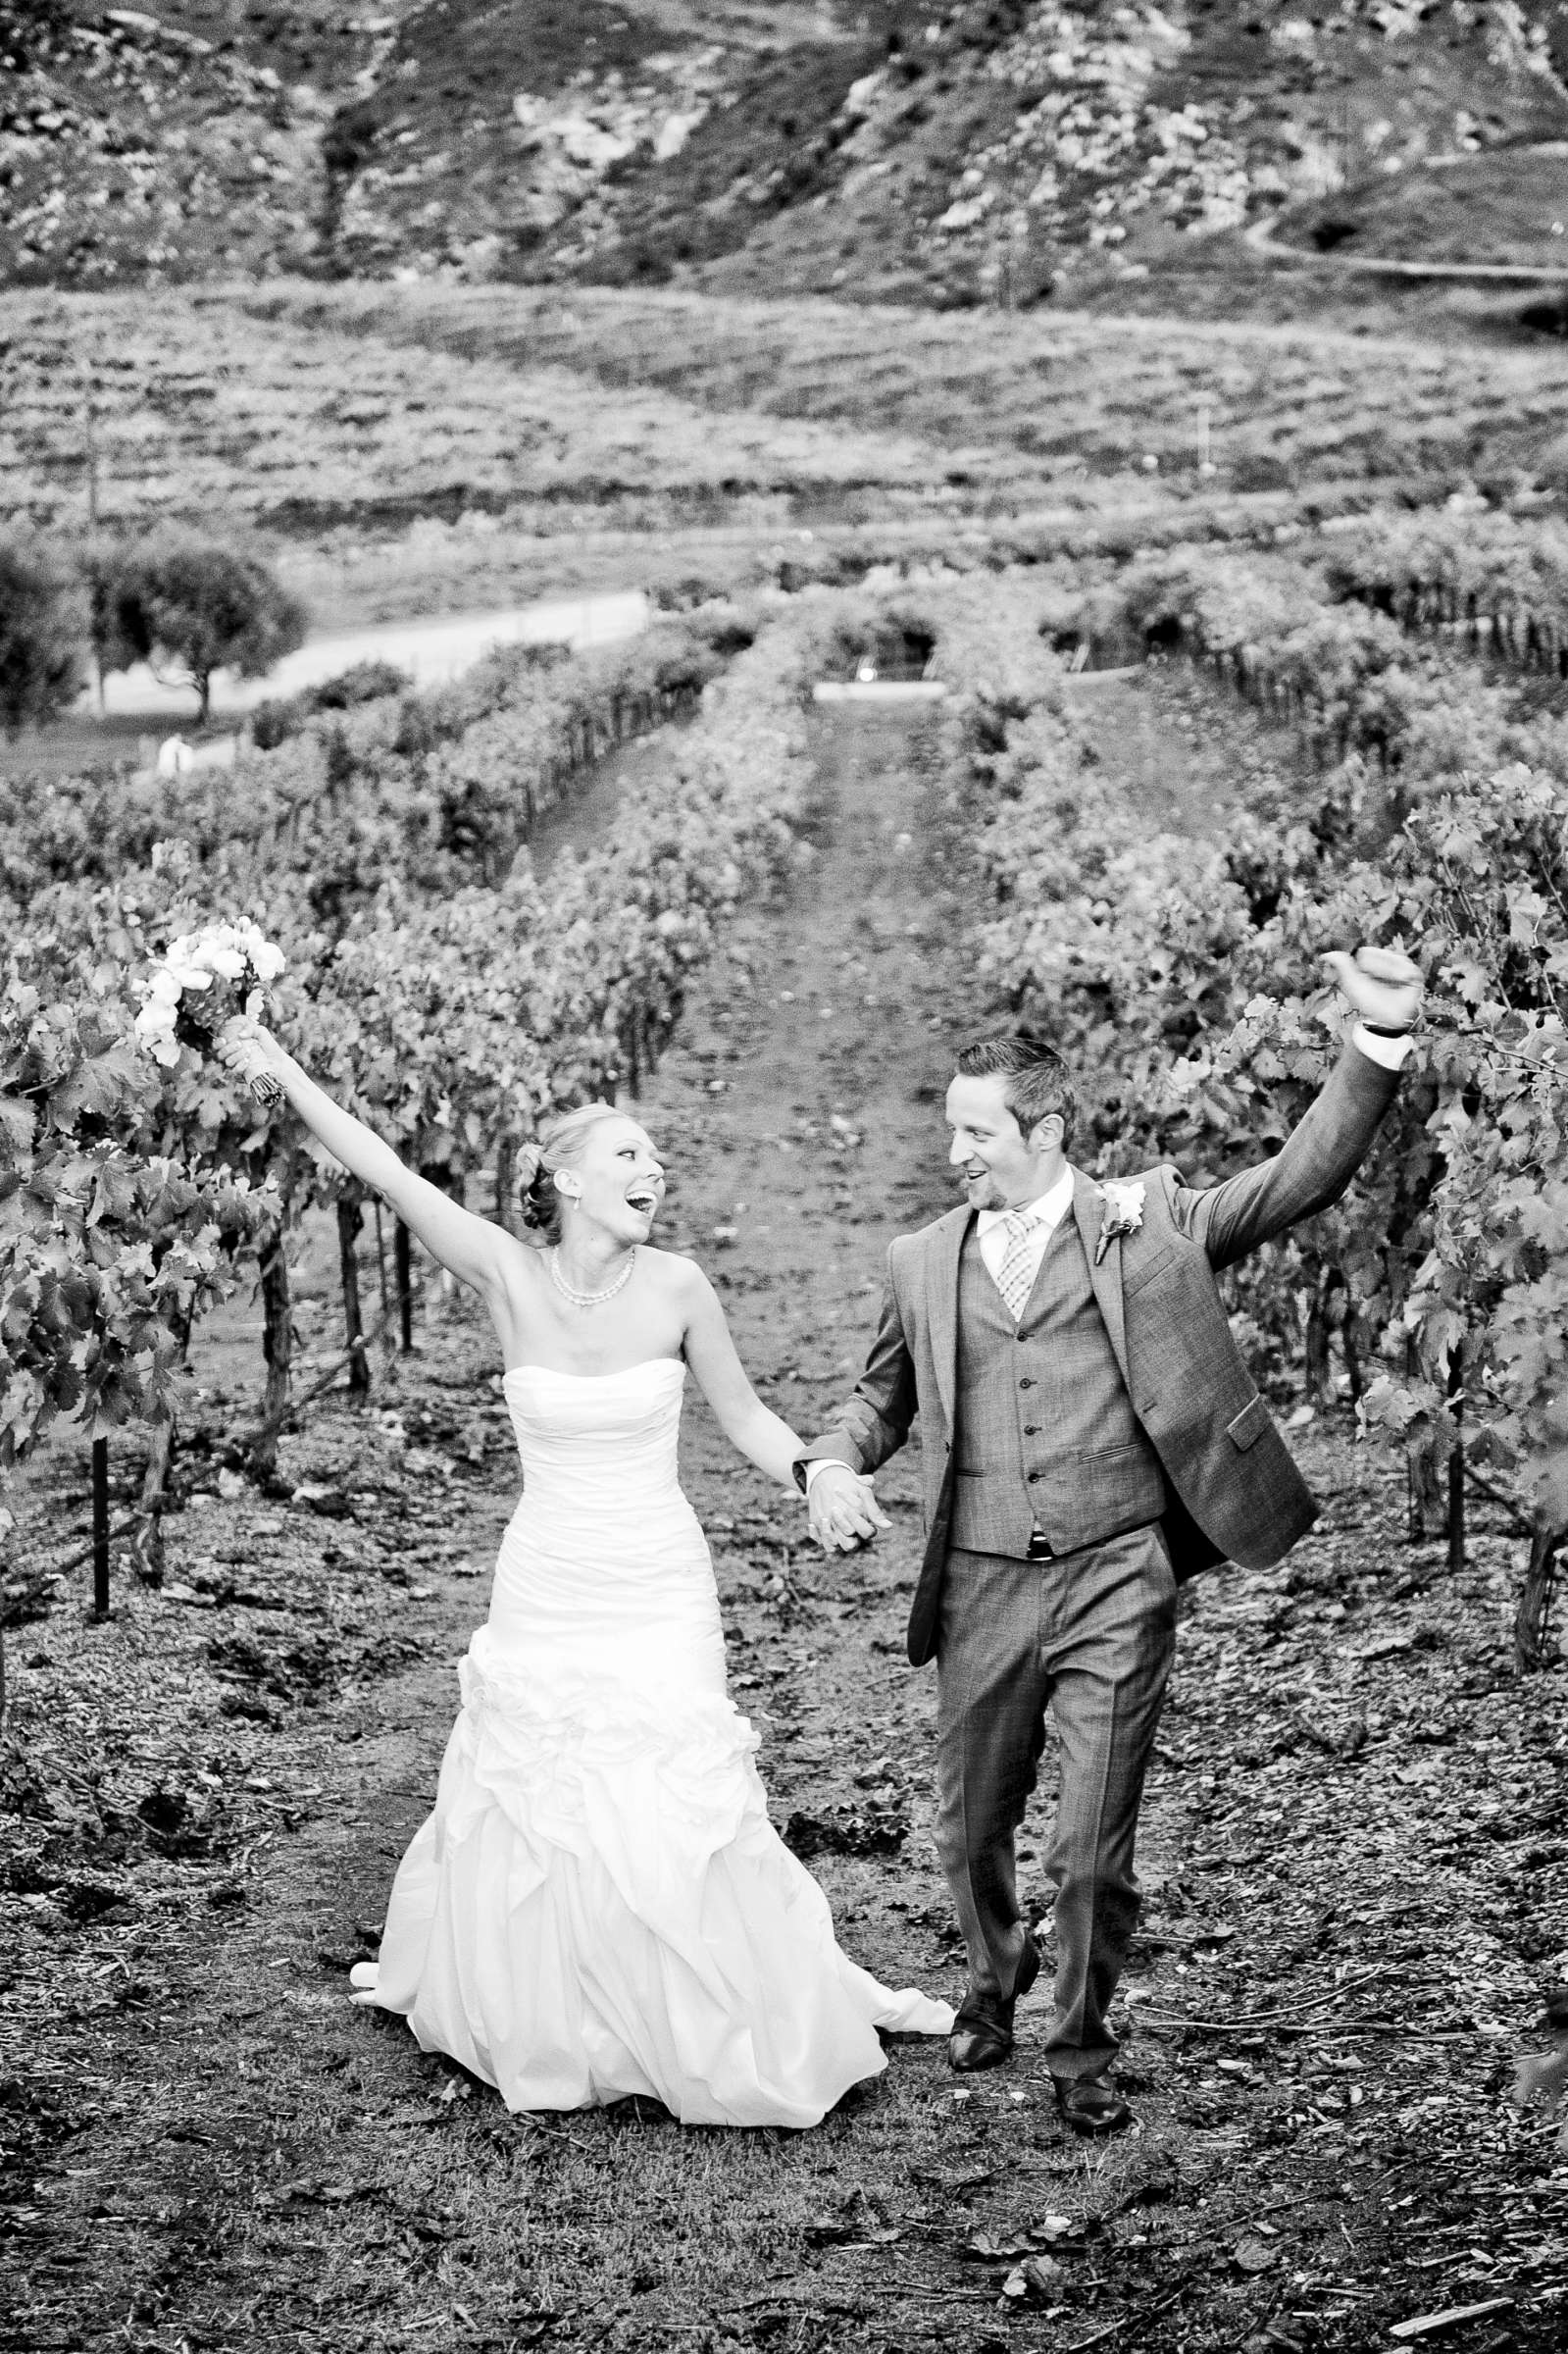 Orfila Vineyards Wedding, Mindy and Bryan Wedding Photo #32 by True Photography